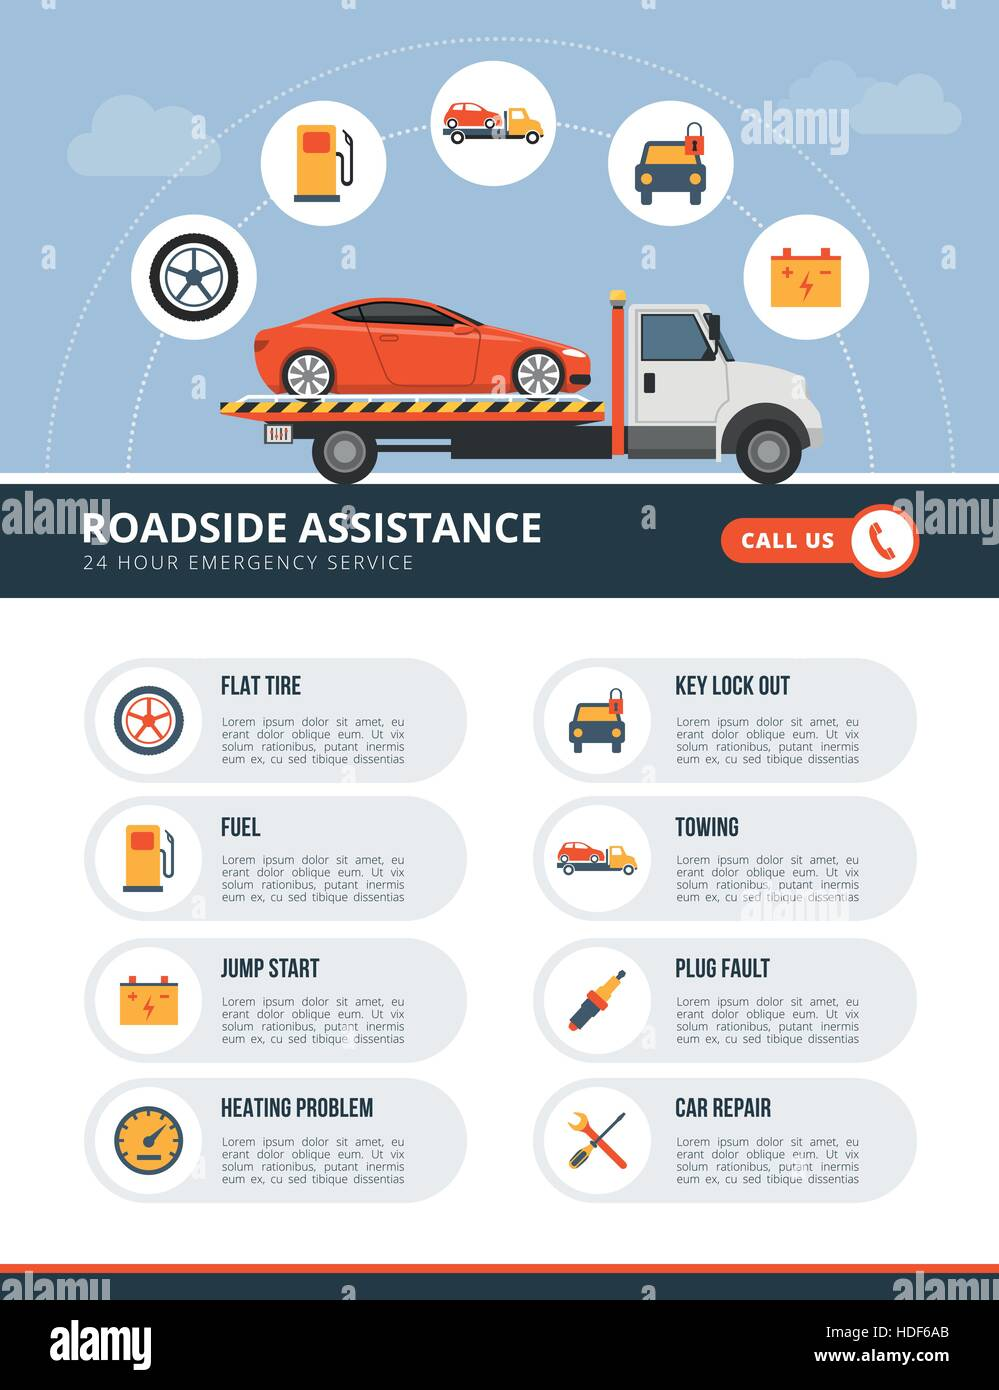 roadside-assistance-infographic-with-tow